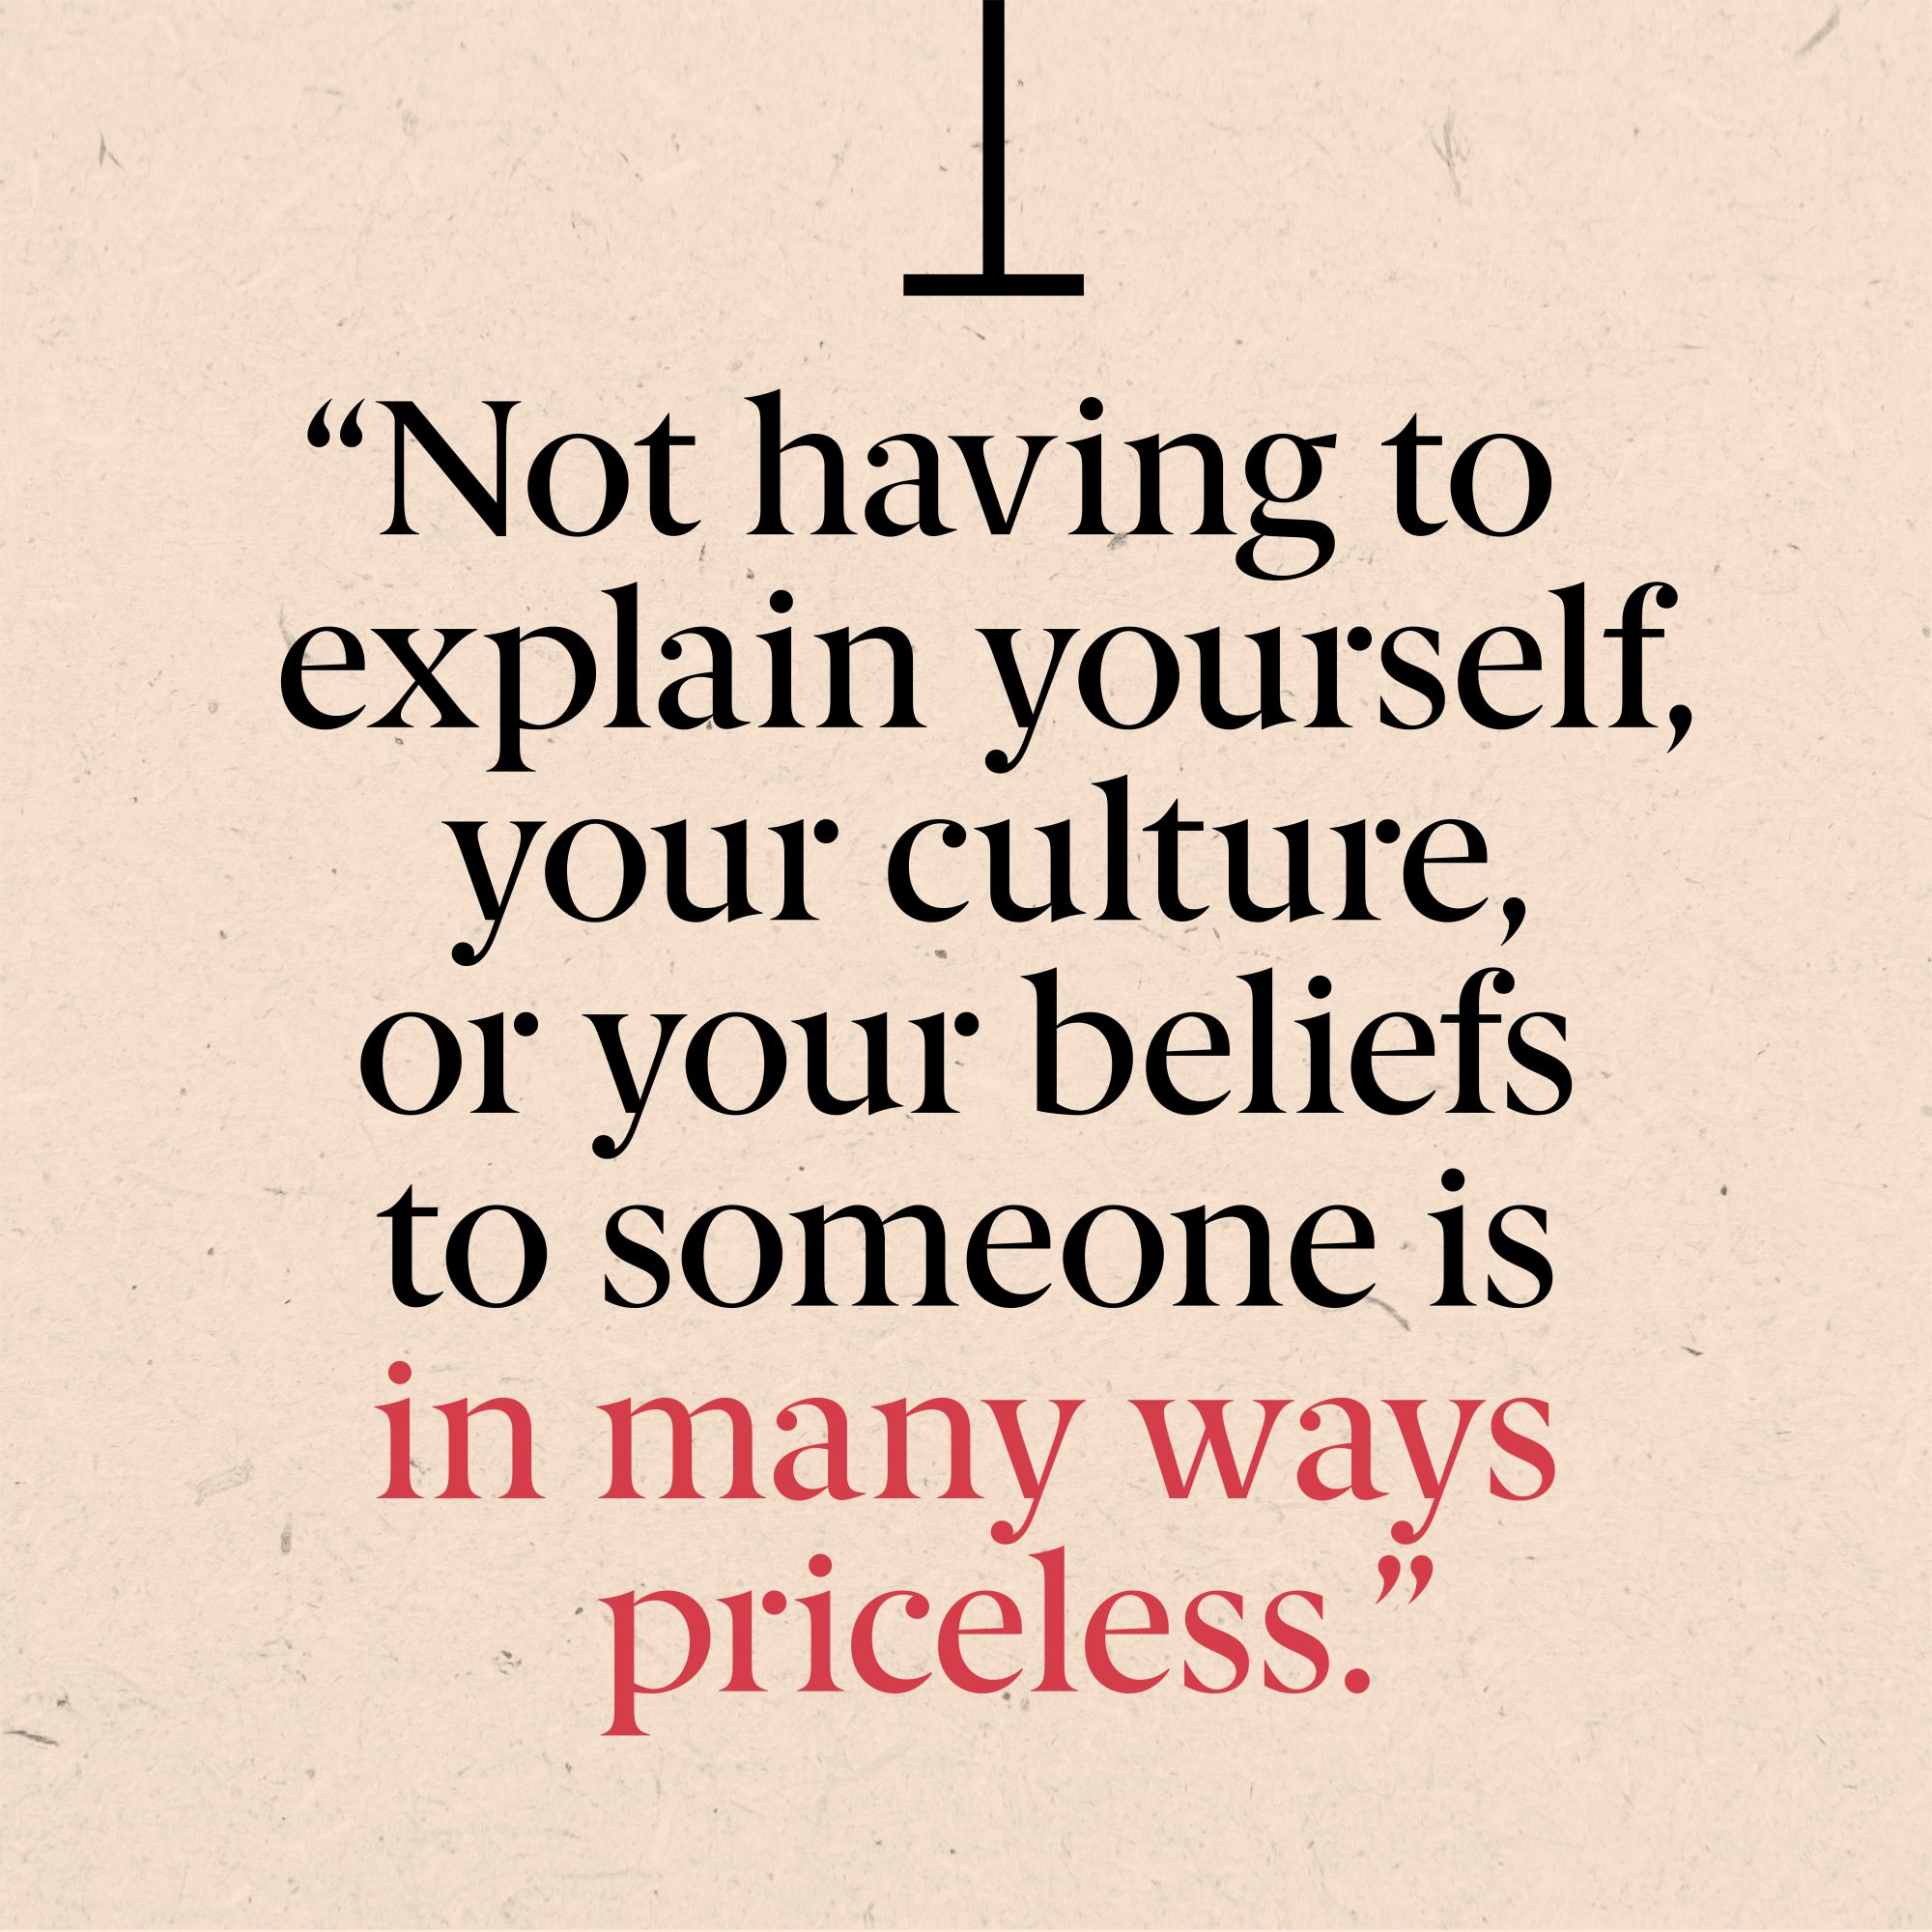 Not having to explain yourself, your culture, or your beliefs to someone is in many ways priceless